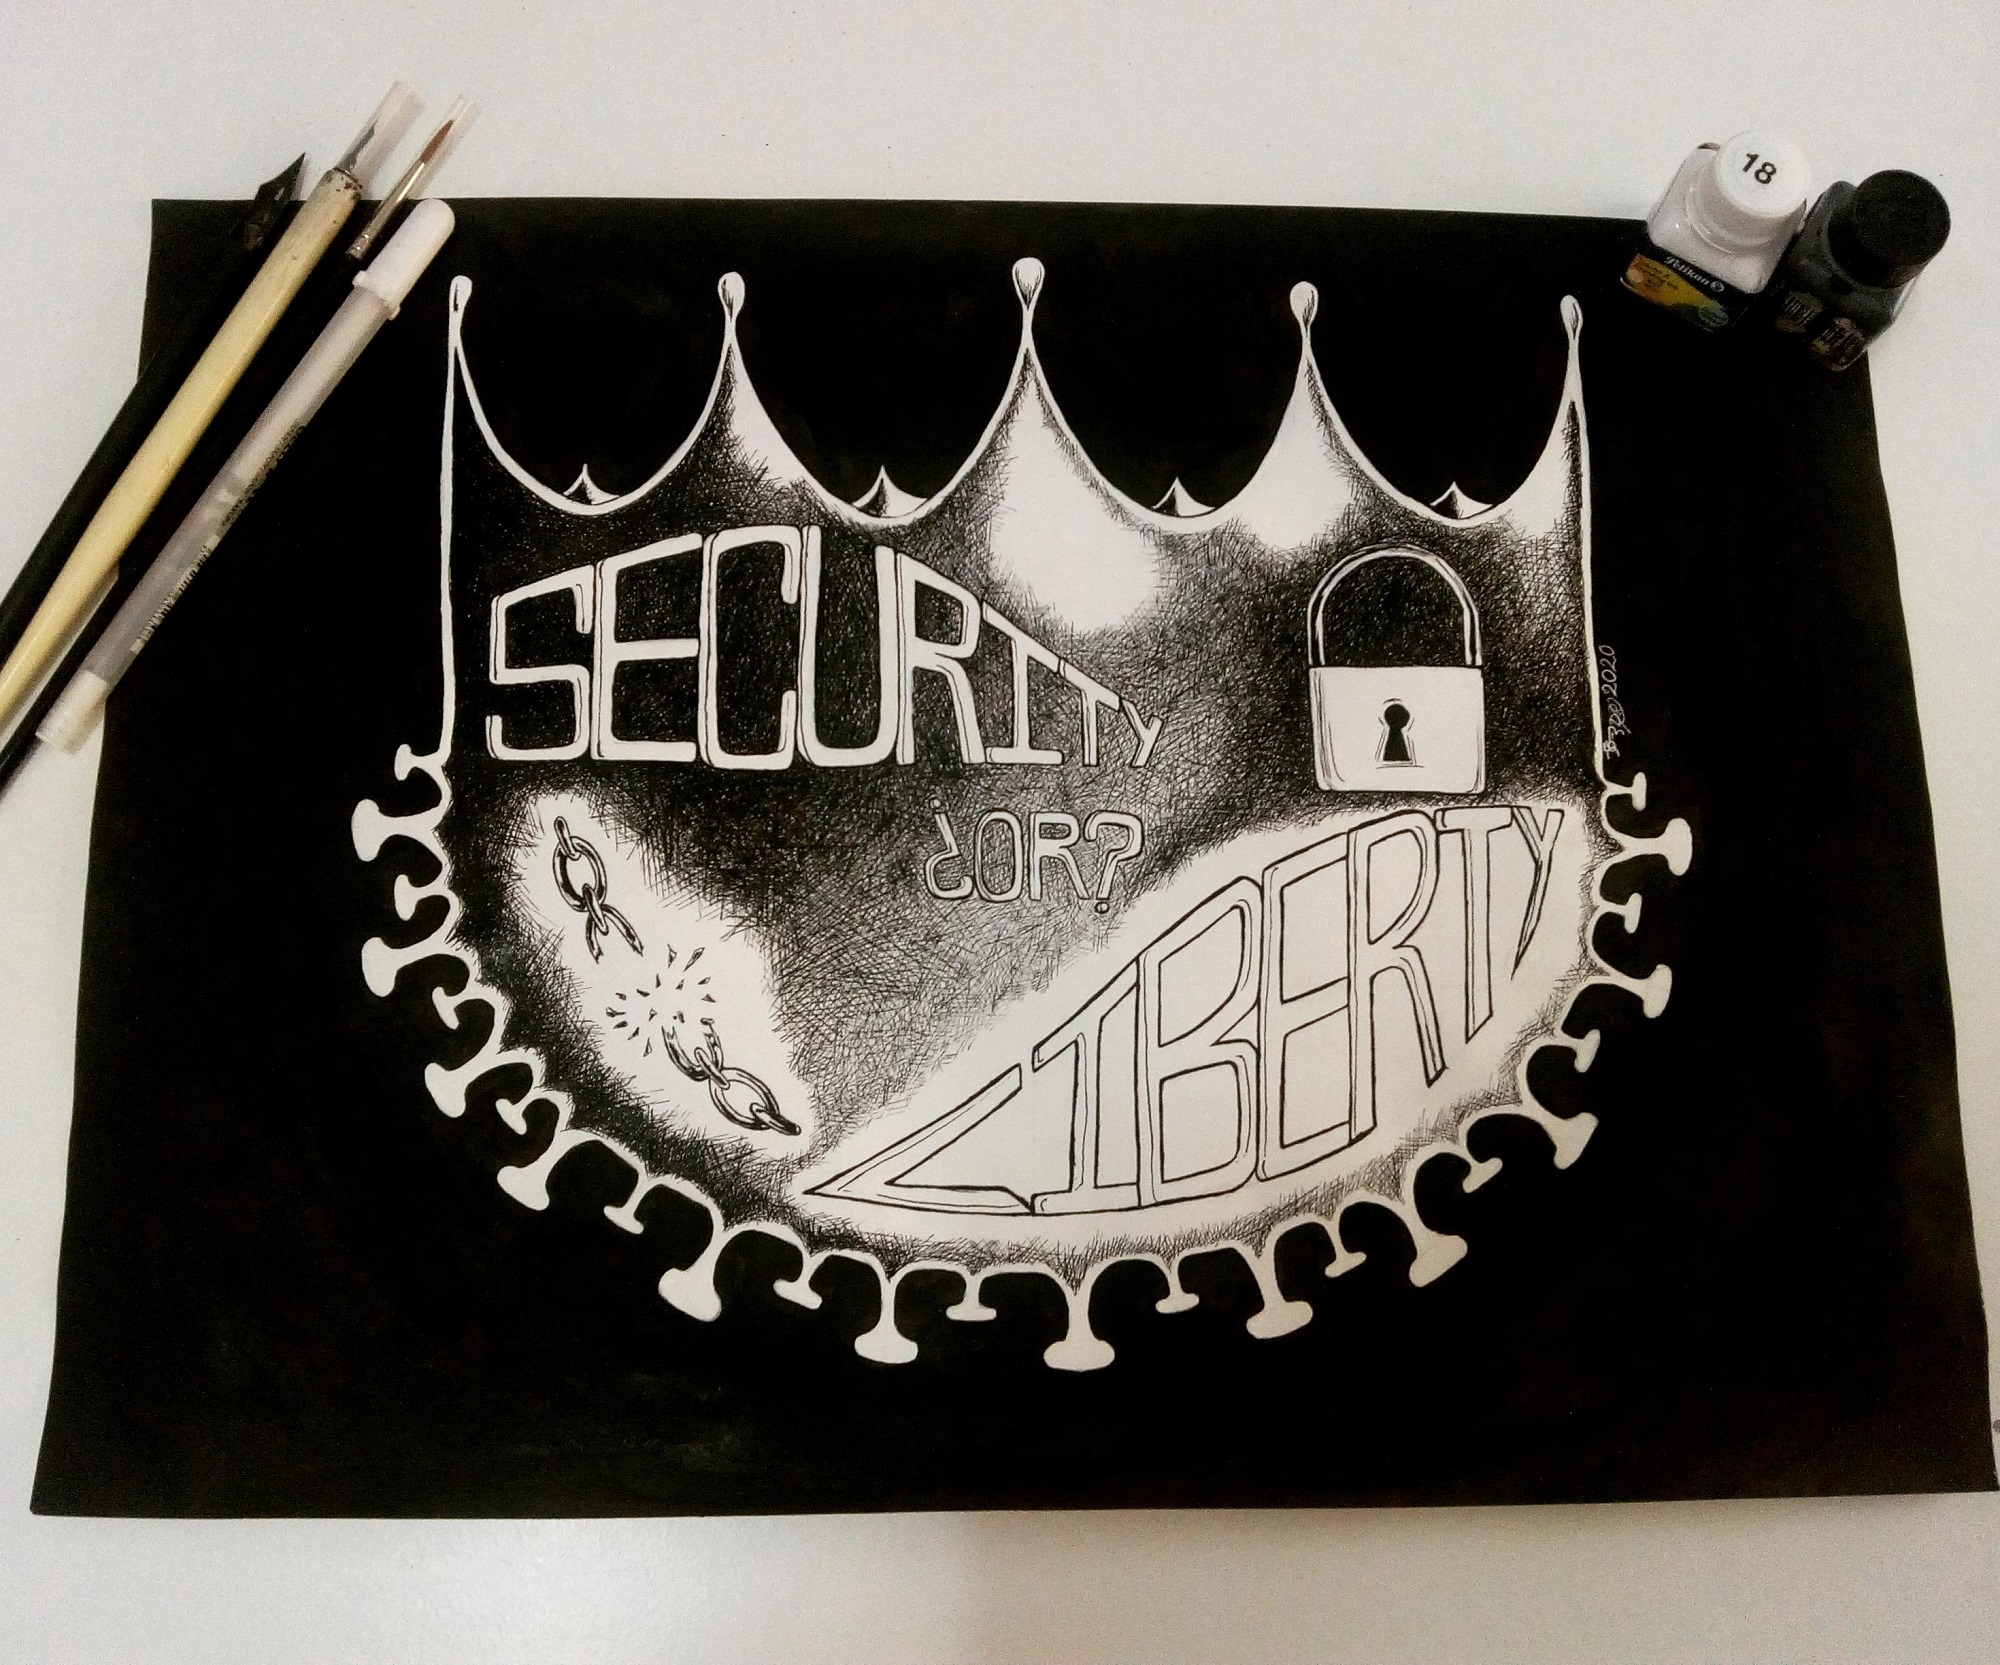 A drawing of a crown